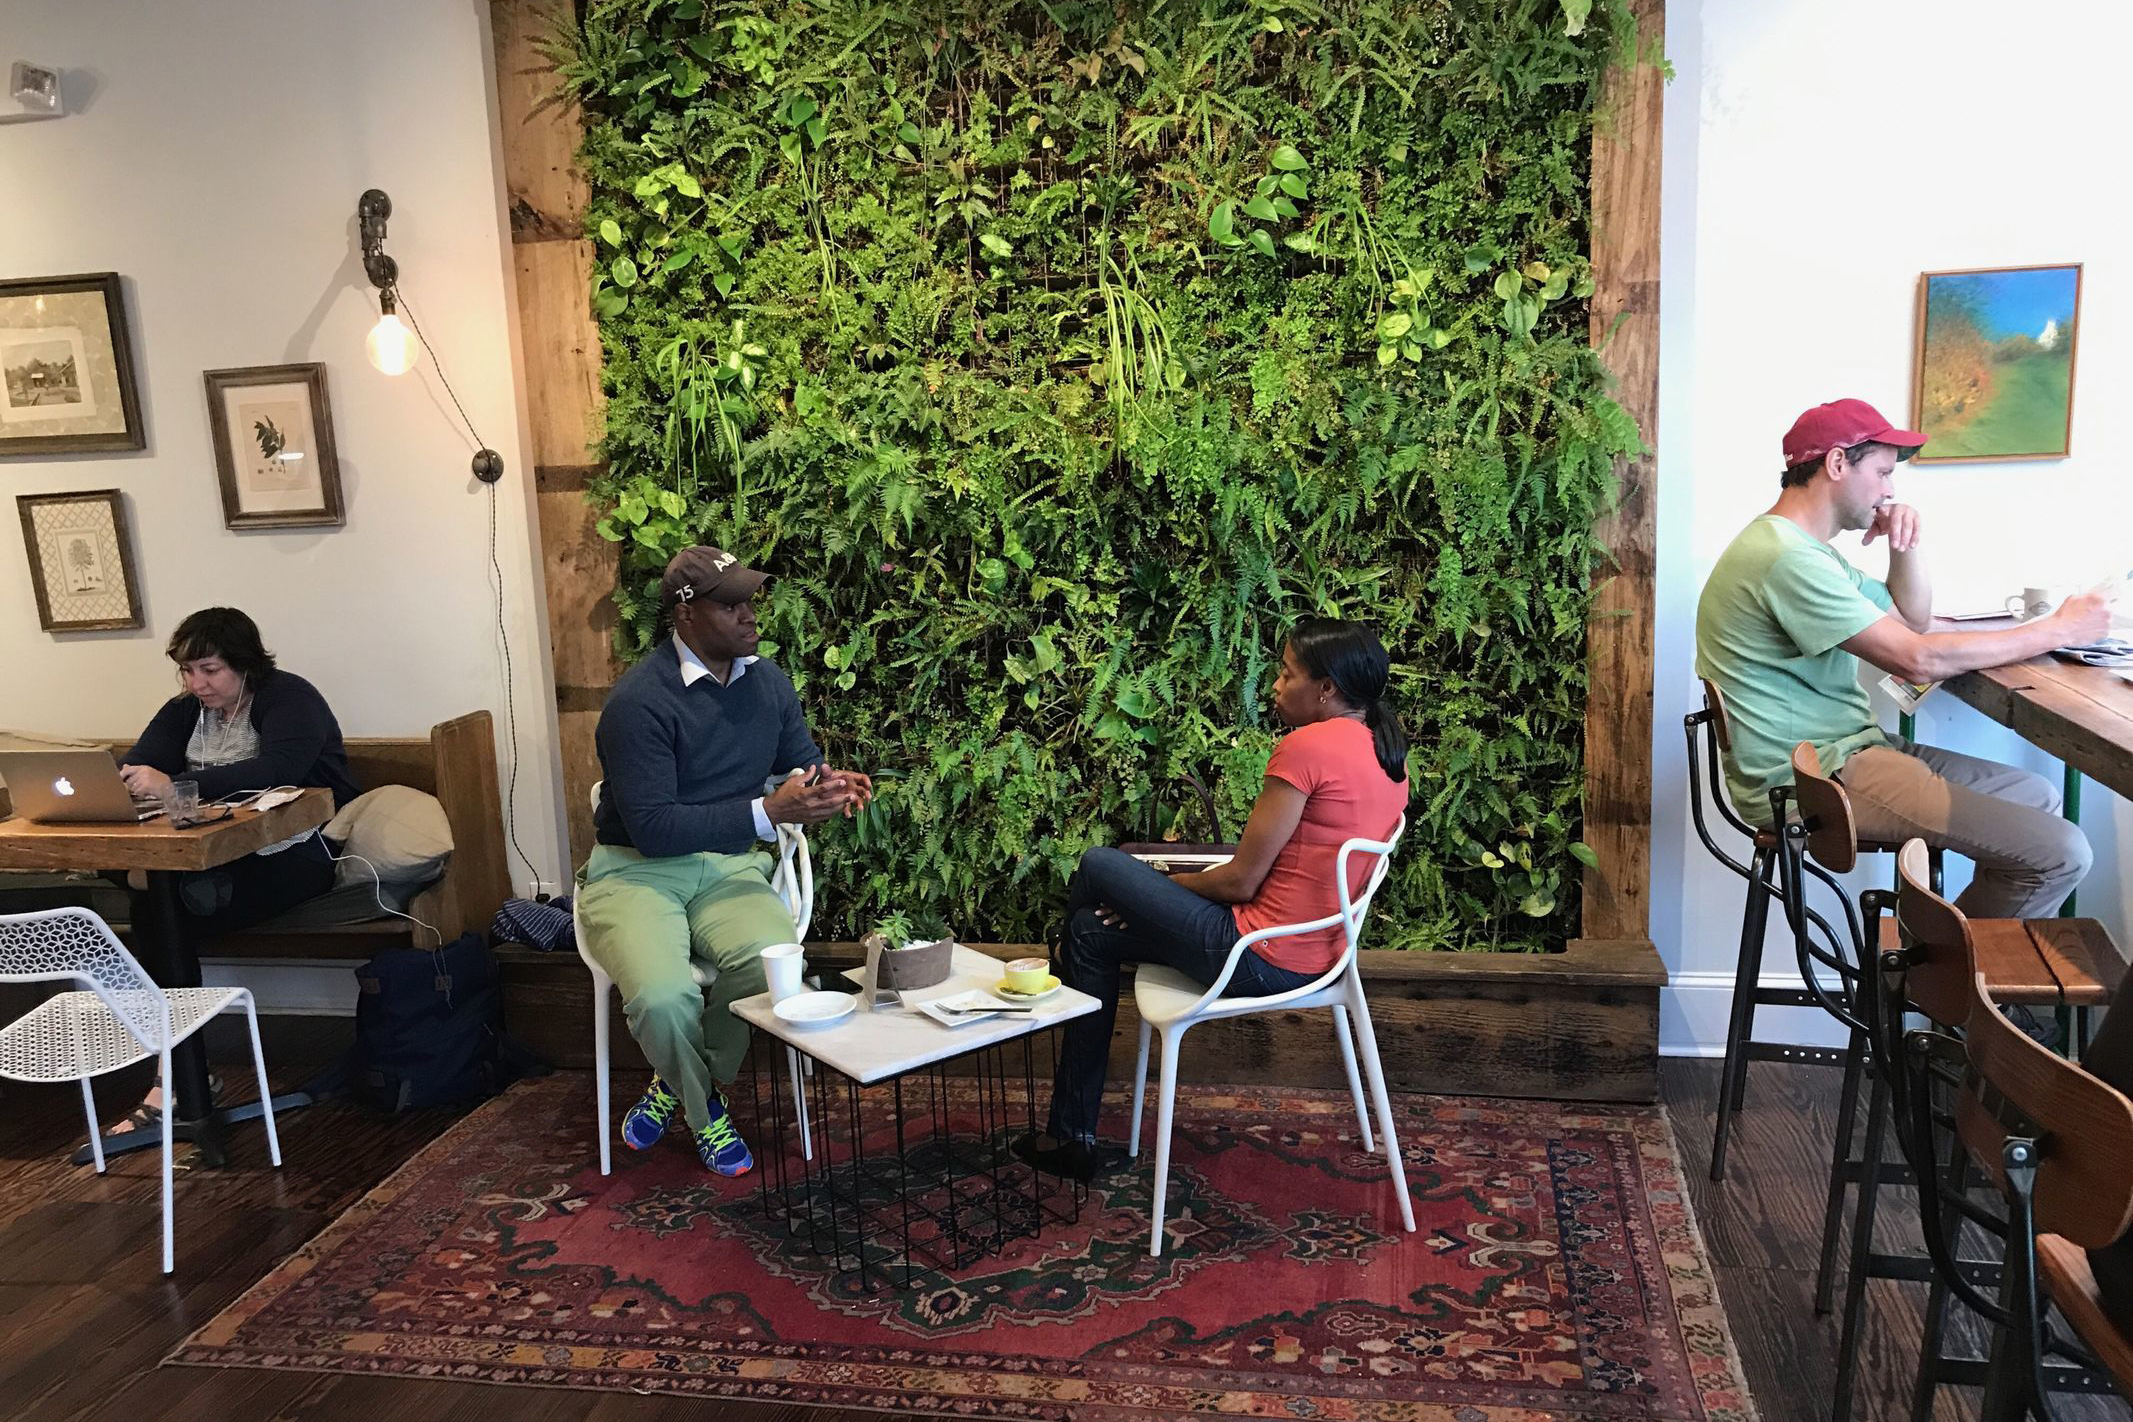 The live plant wall is a signature design feature at Green Engine Coffee Co. (CRAIG LABAN / Staff)